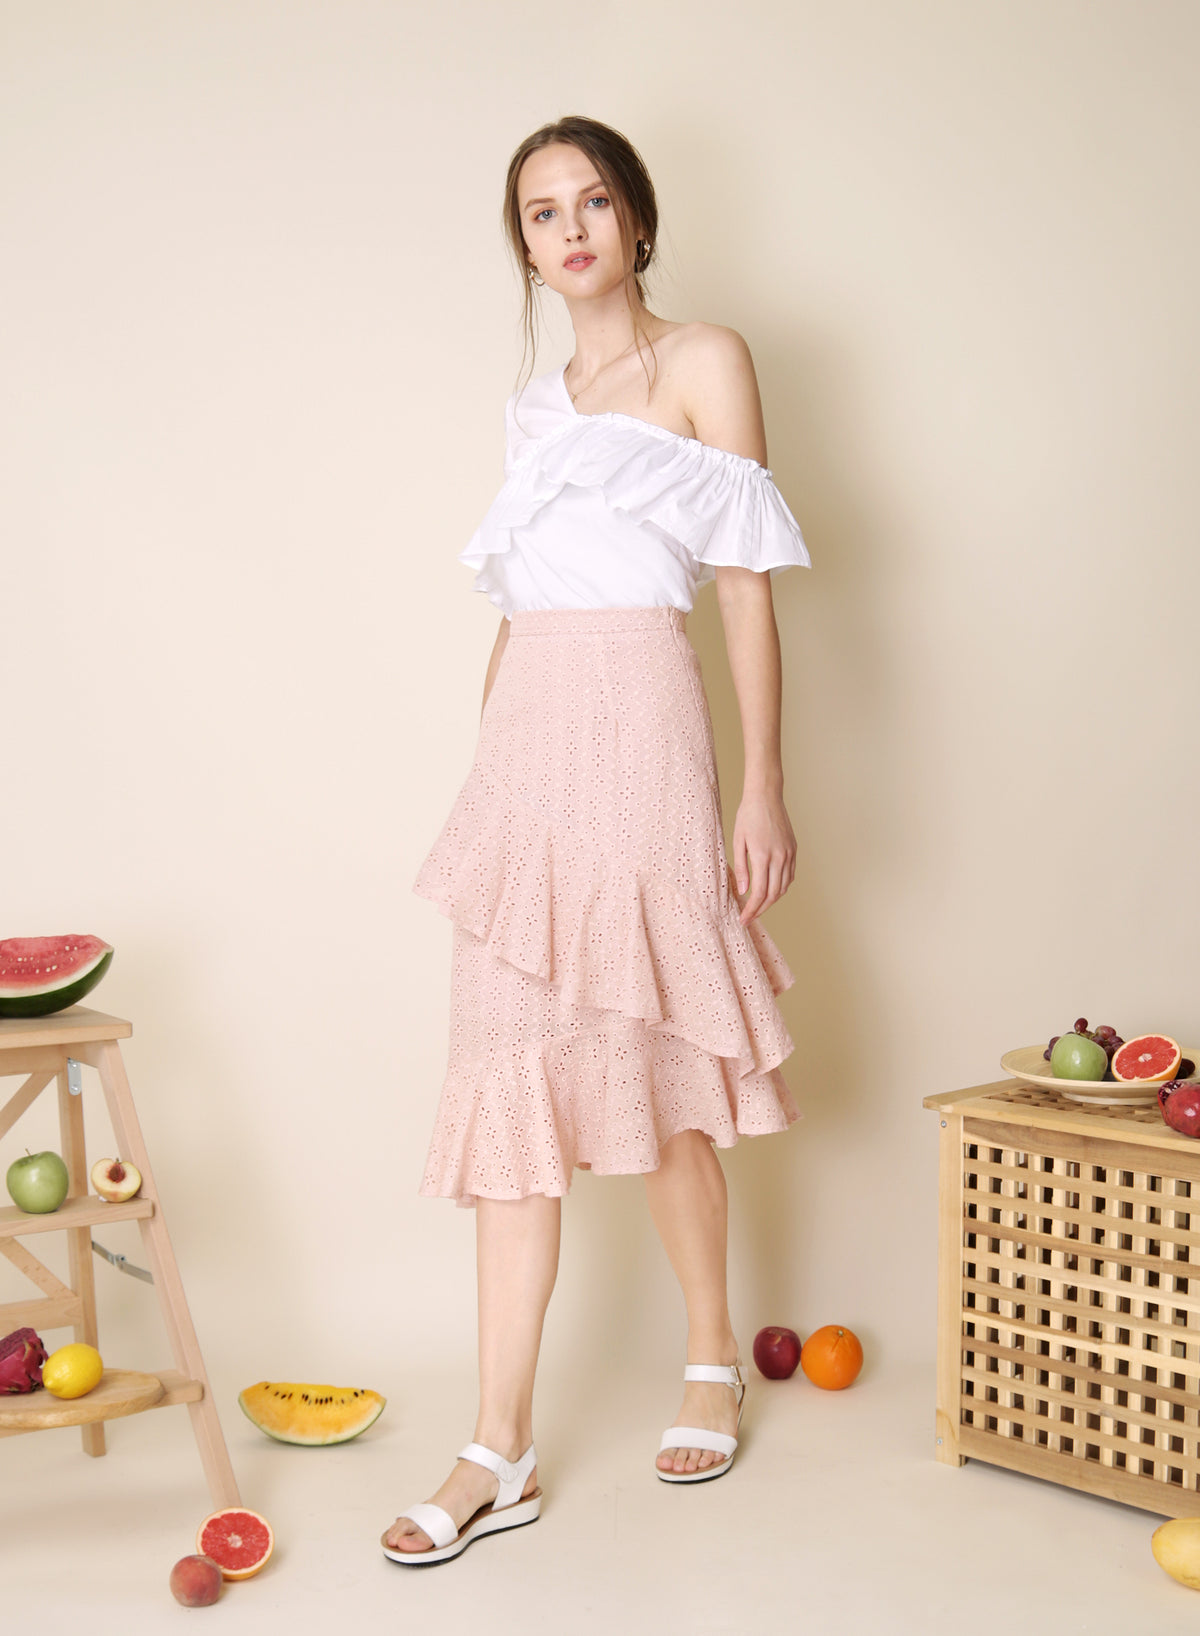 Jubilee Ruffled Eyelet Skirt (Blush) at $ 38.00 only sold at And Well Dressed Online Fashion Store Singapore